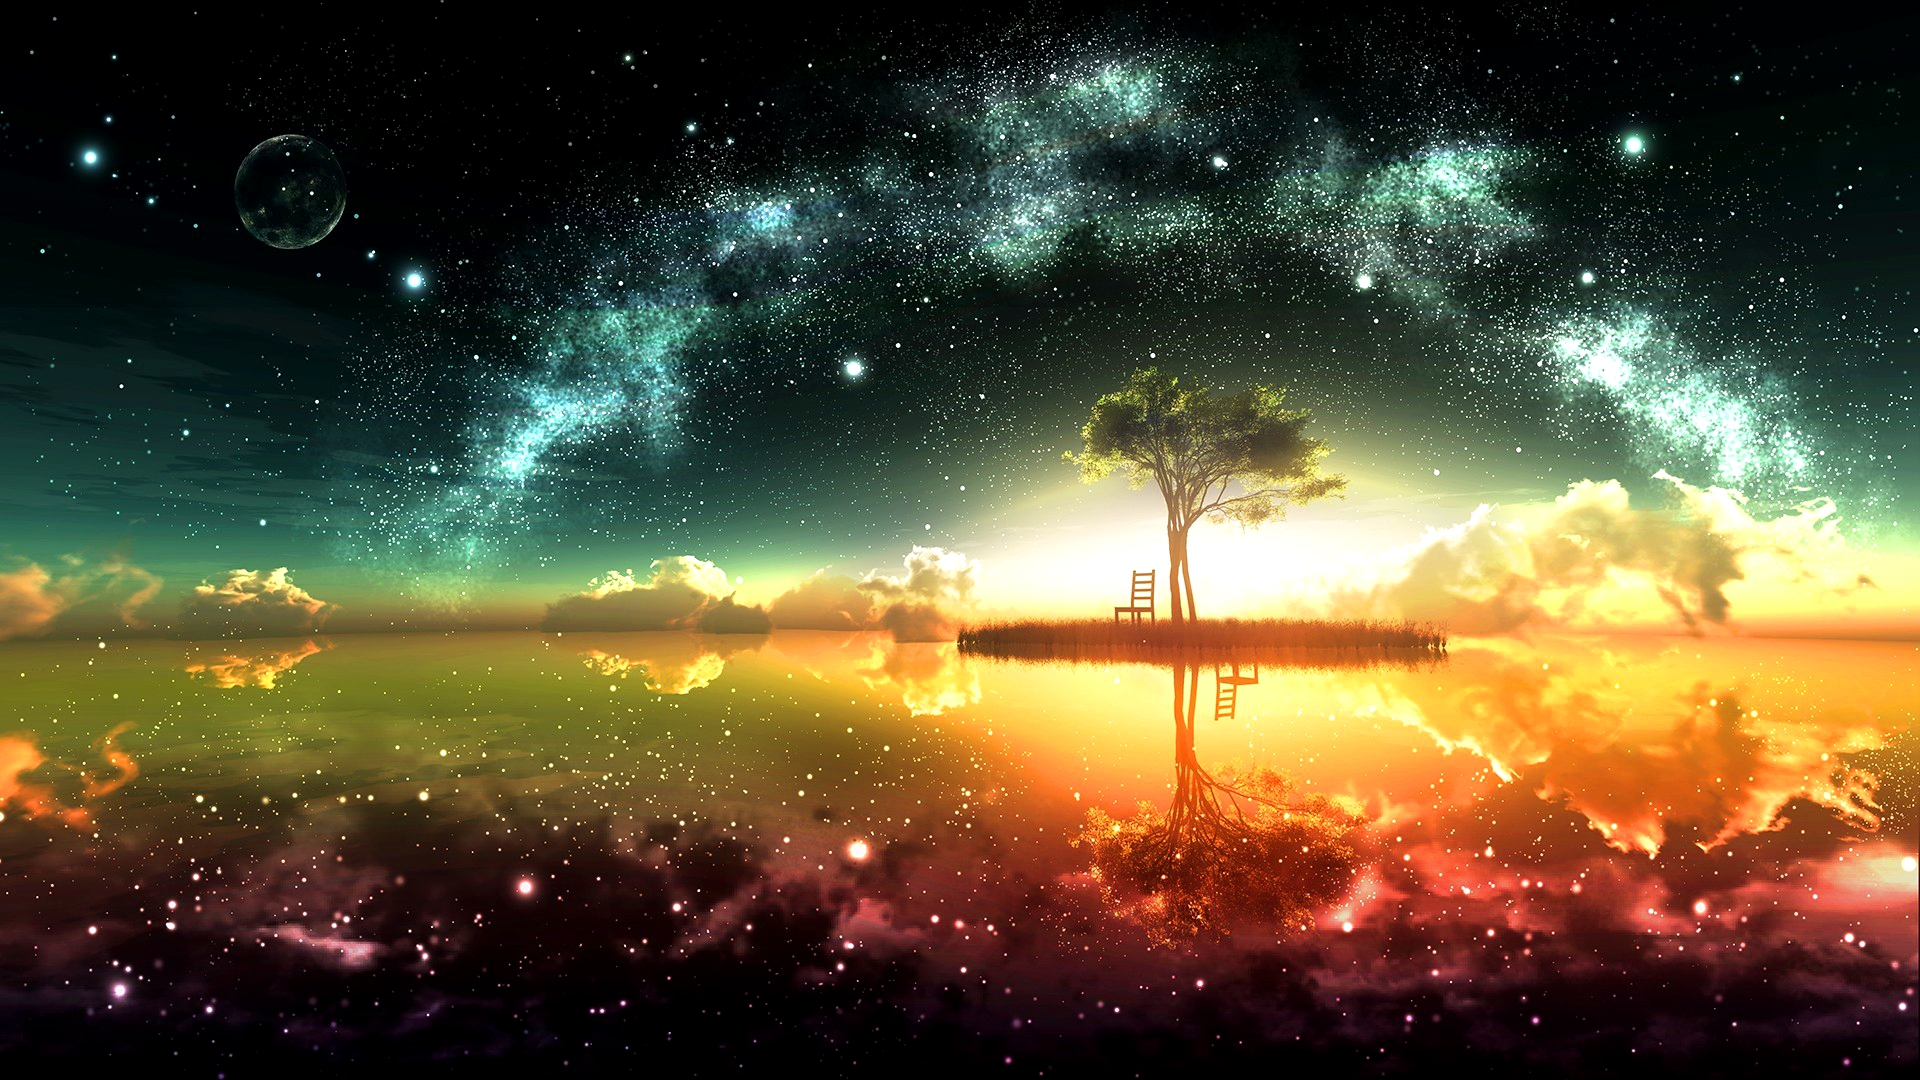 Surreal Space Wallpaper High Quality Space Backgrounds 1920x1080 Download Hd Wallpaper Wallpapertip